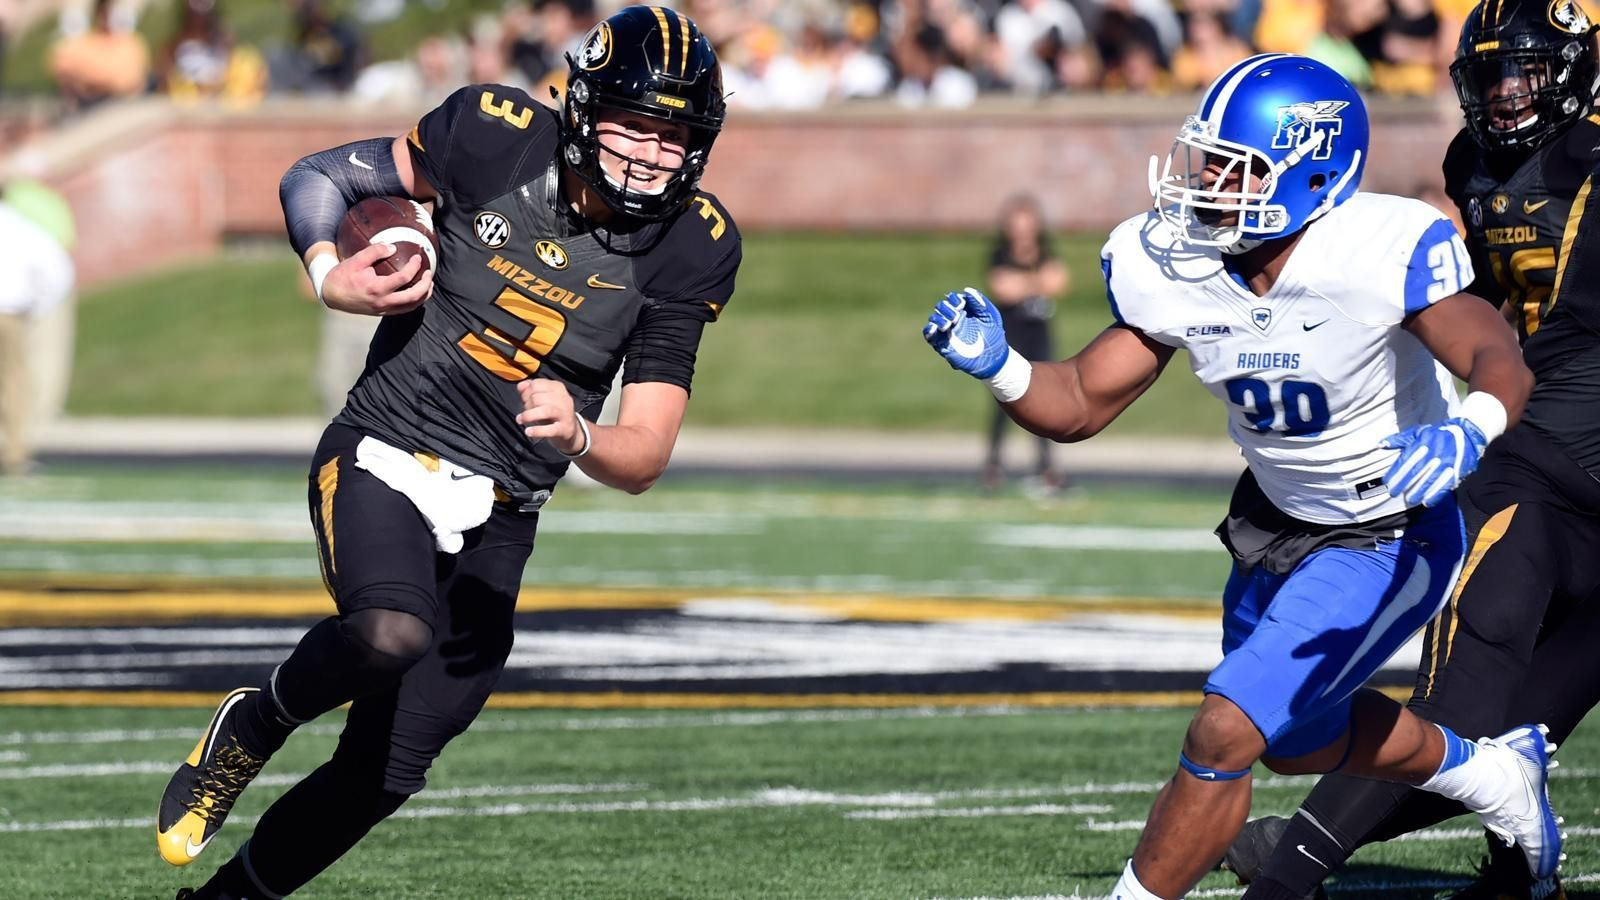 Missouri falls to Middle Tennessee in offensive battle